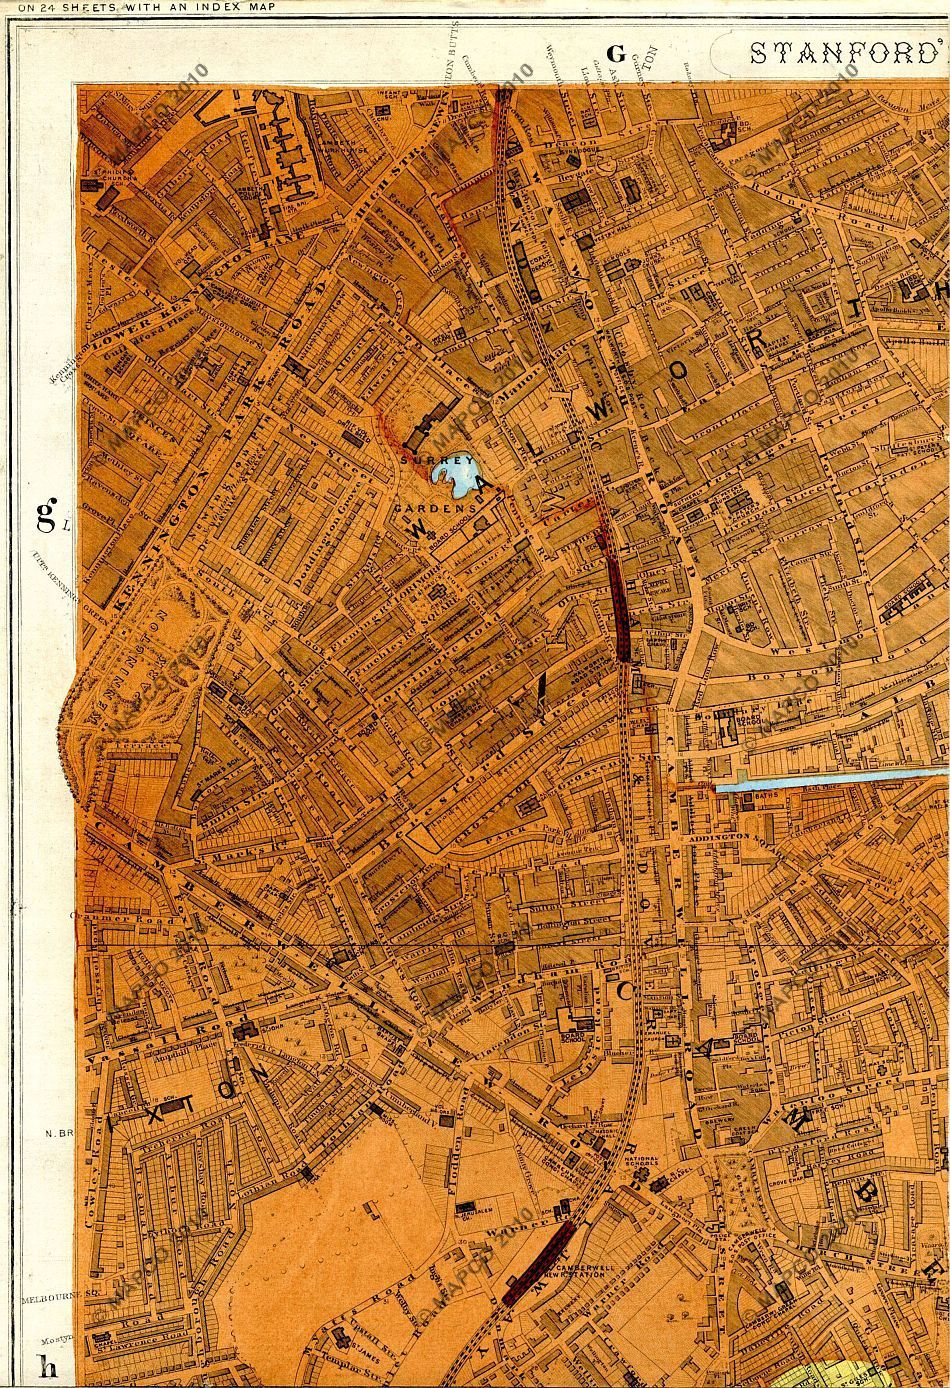 Map Of London And Surrounding Areas.1878 Map Of Walworth And Surrounding Areas My Ancestors London